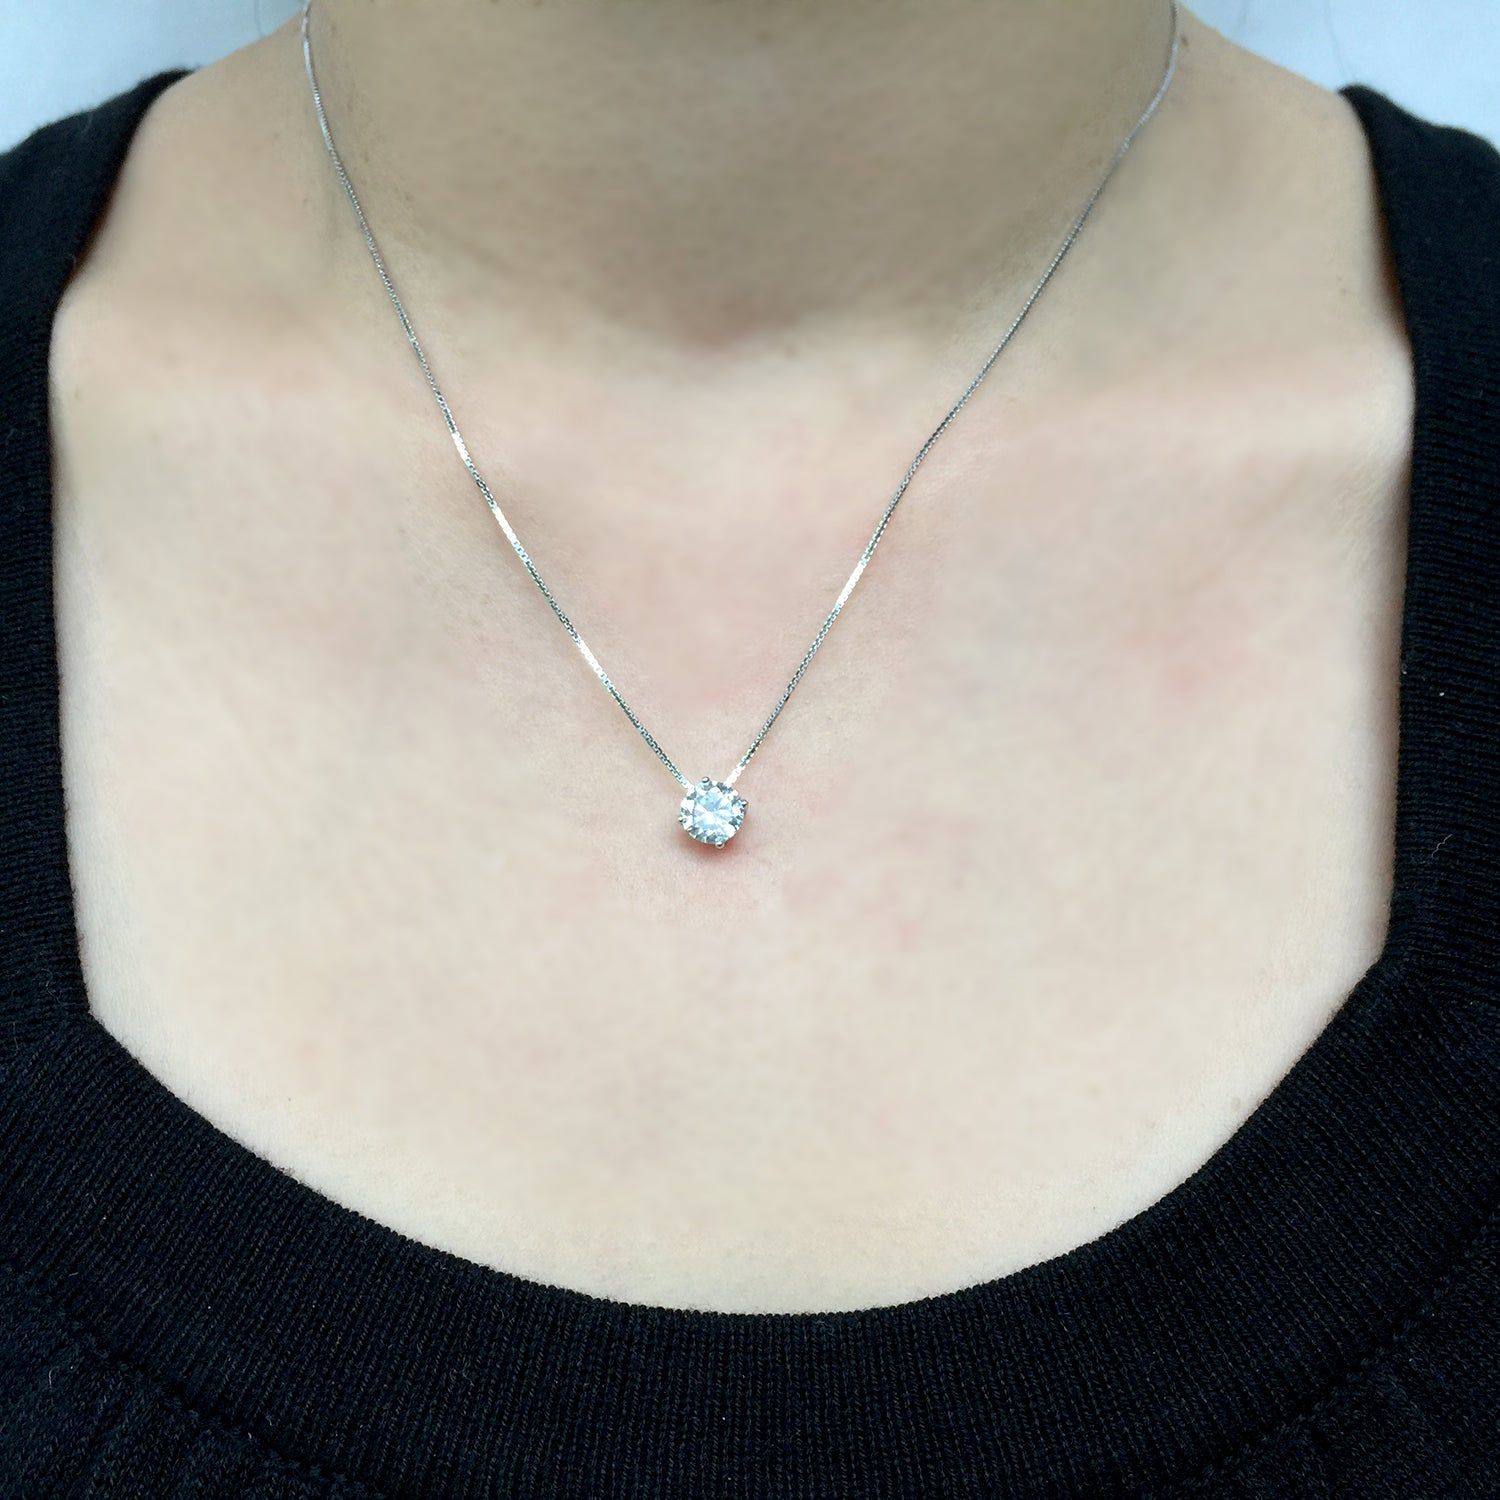 Crystal Necklace Sterling Silver, Tiny Crystal Charm Necklace, Minimalist Jewelry Silver, Gift for Mum